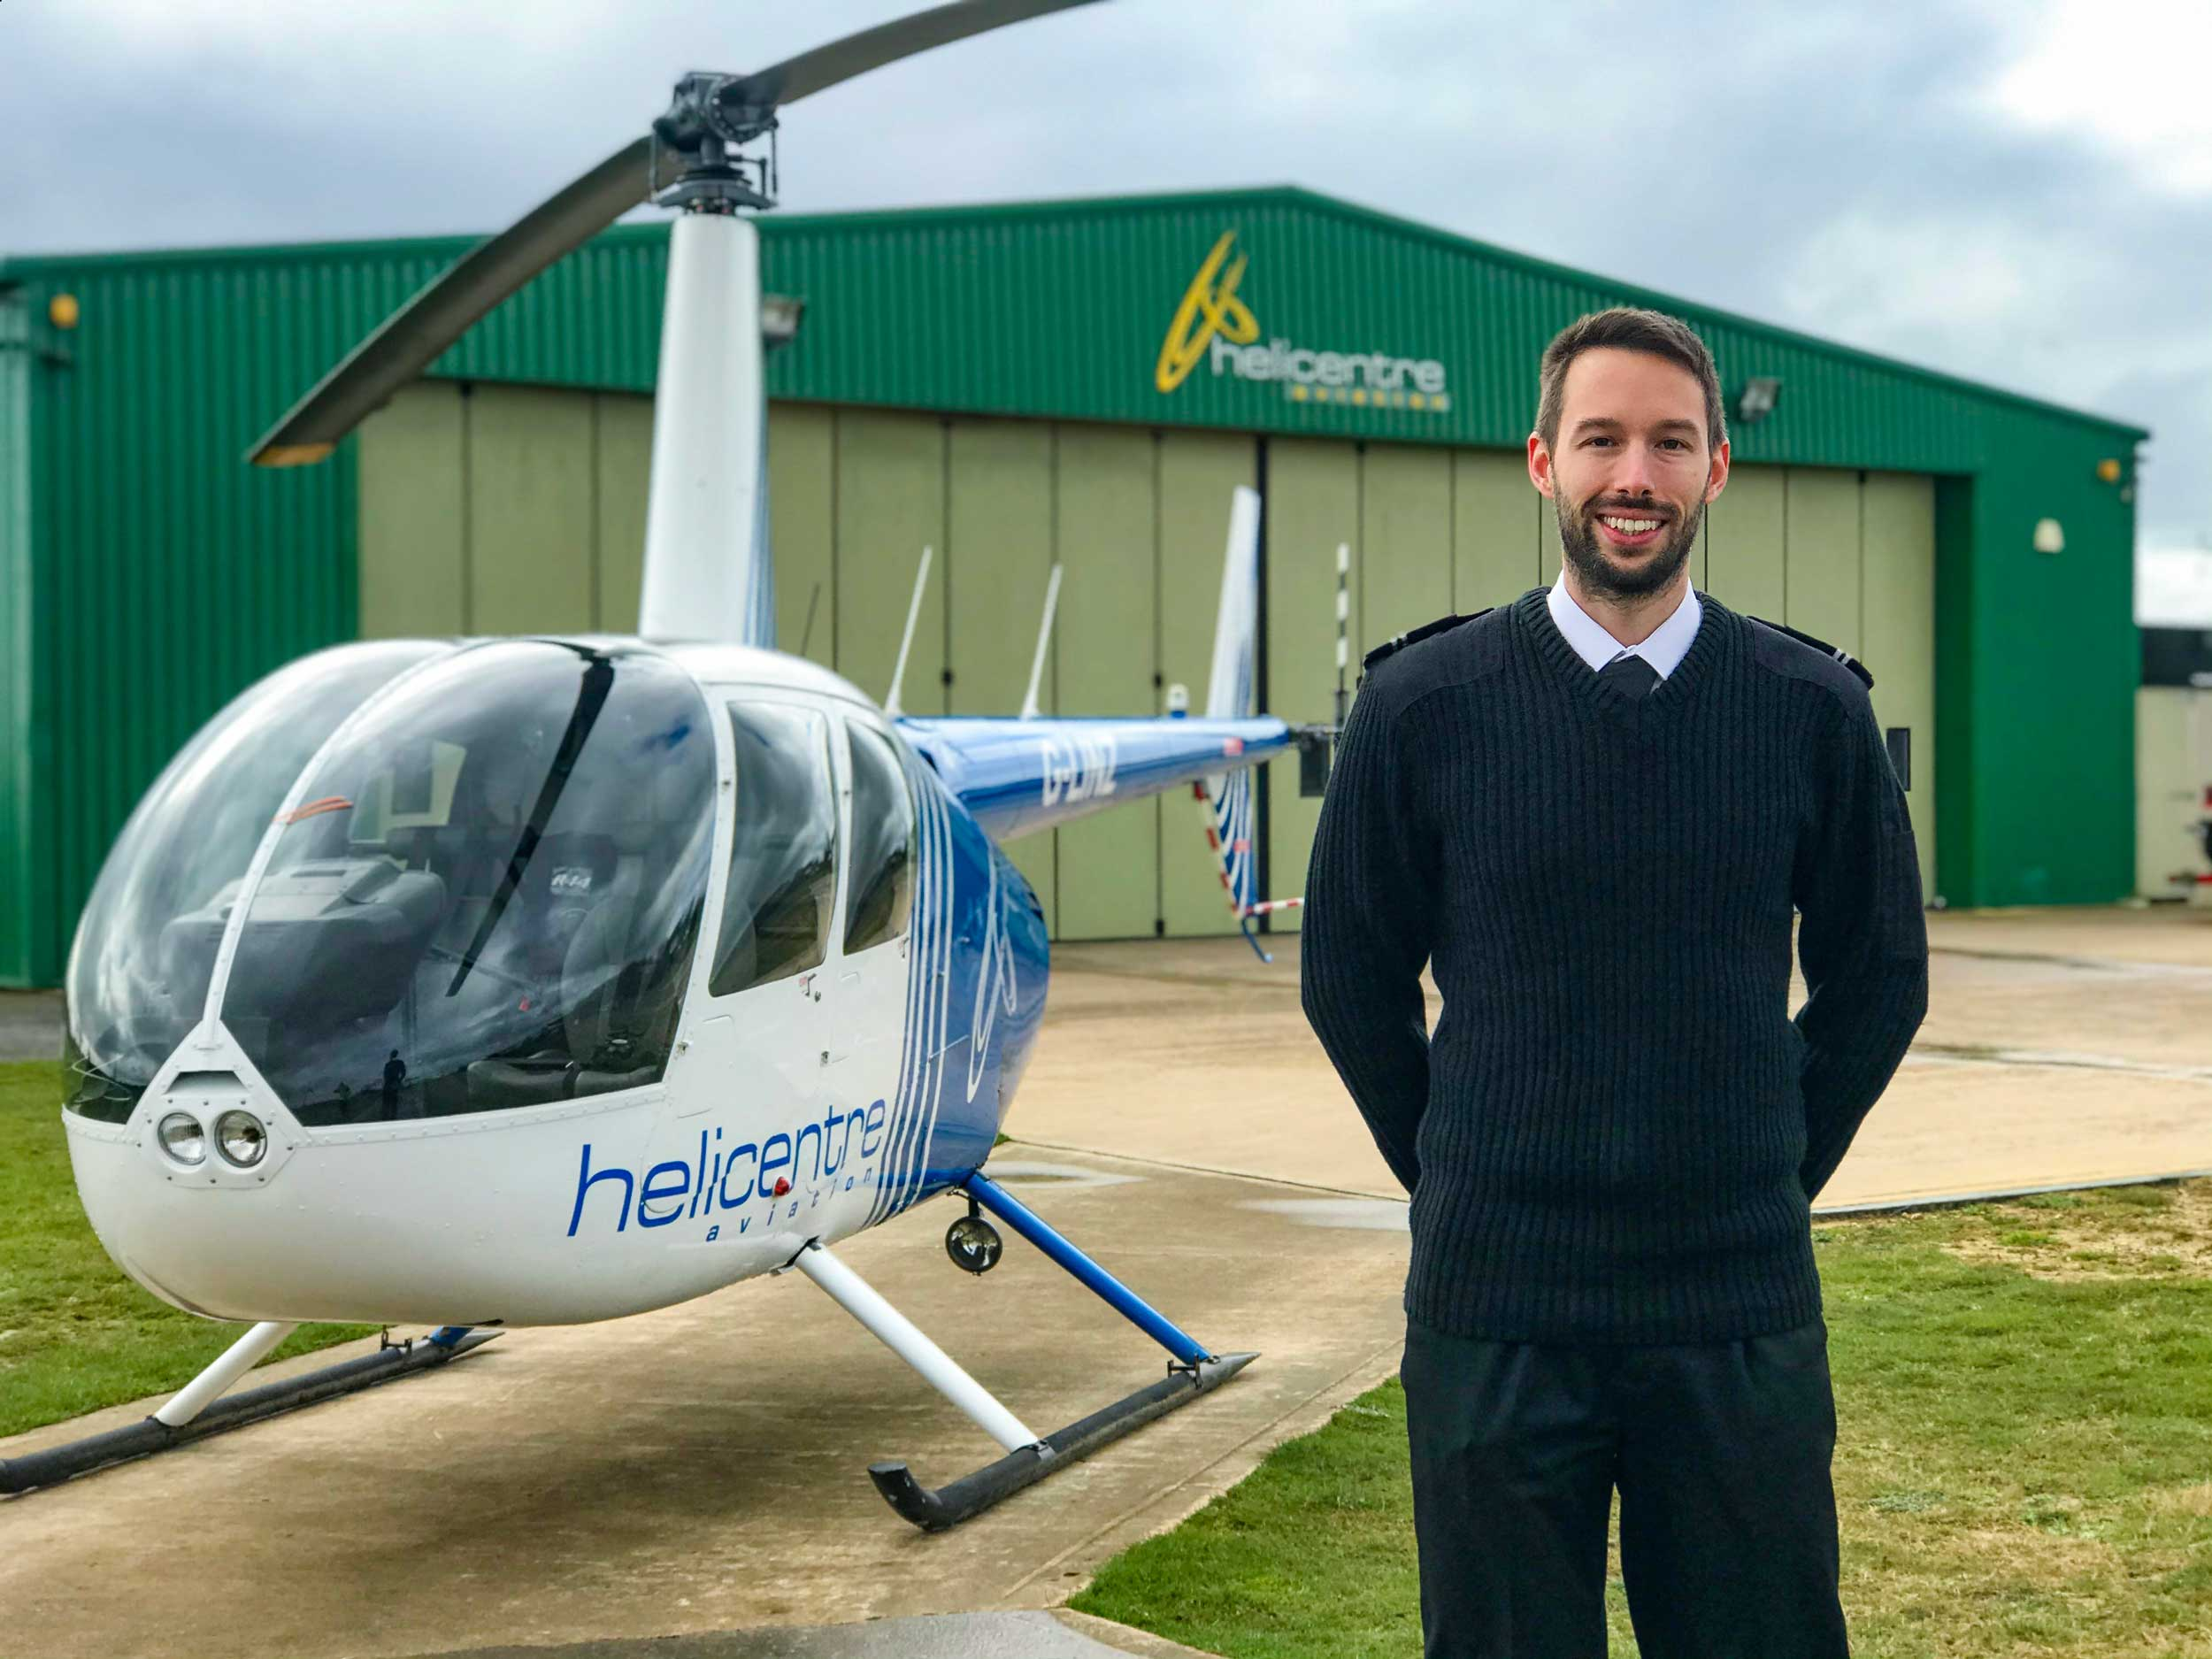 Helicentre scholarships